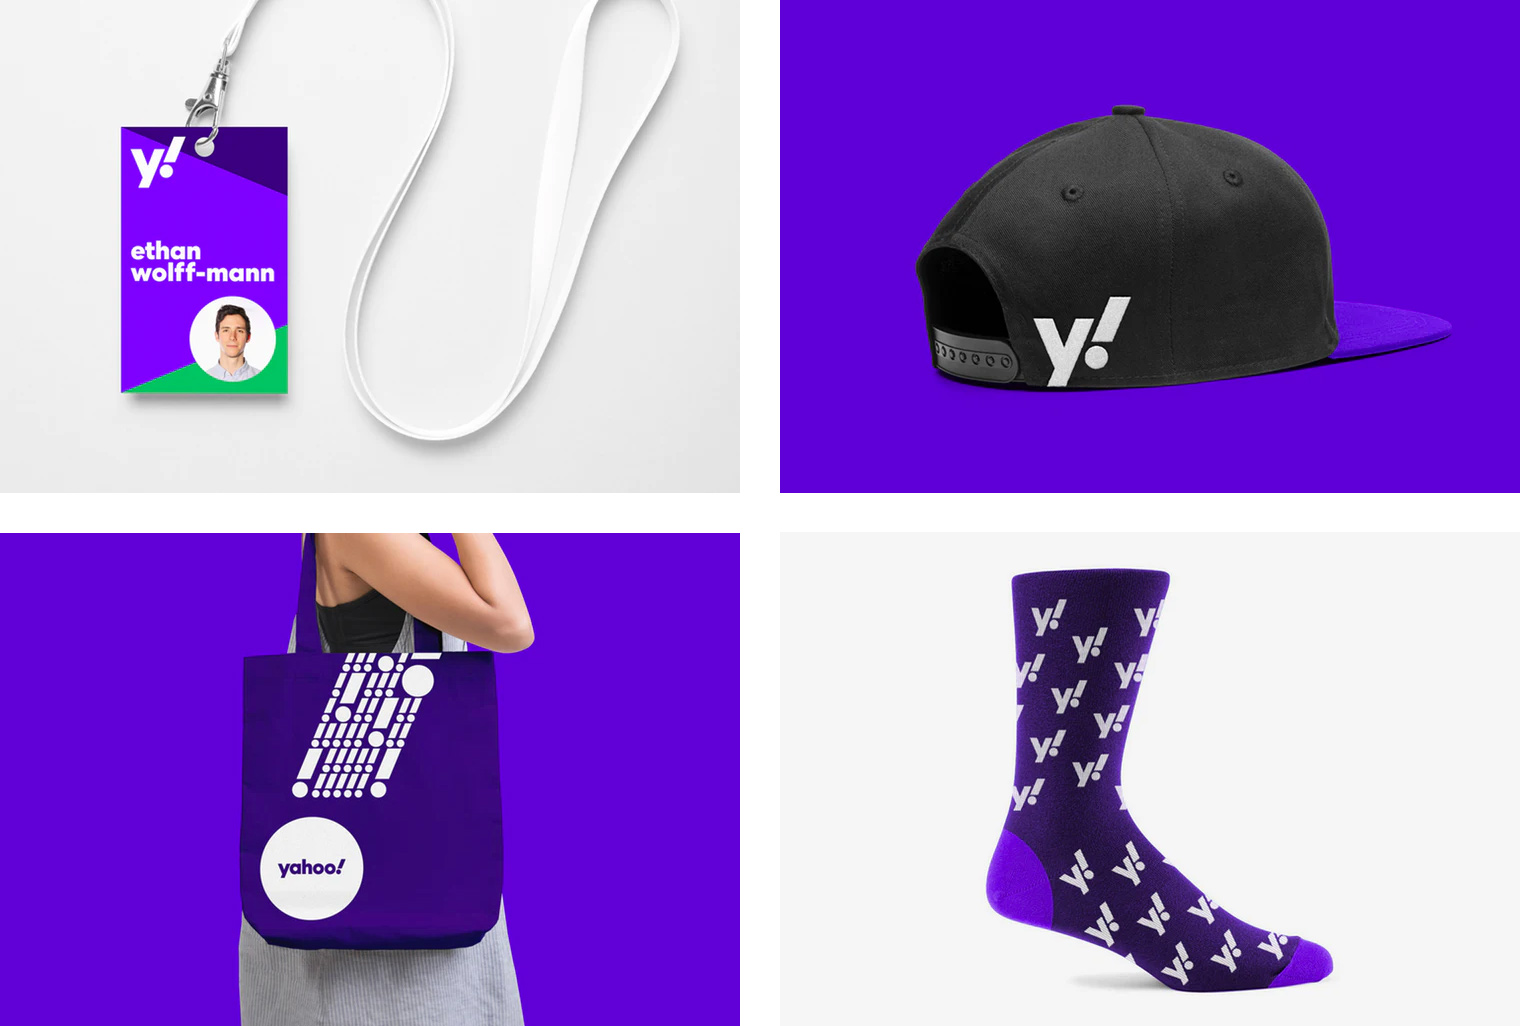 Brand New: New Logo and Identity for Yahoo! by Pentagram.